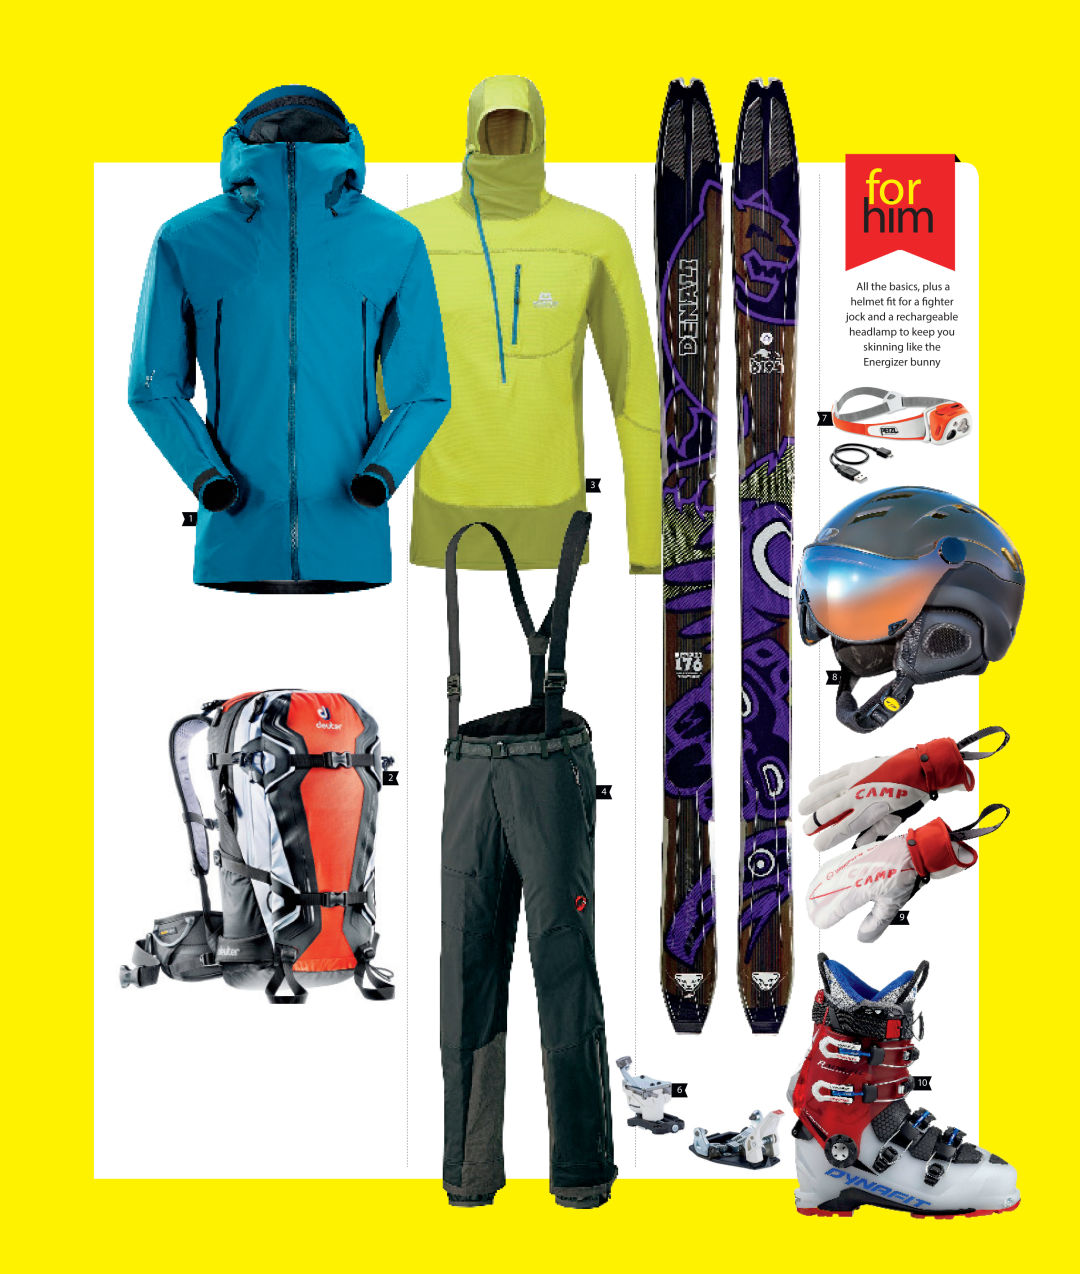 Cosu winter 2015 gear for him sfcr2w